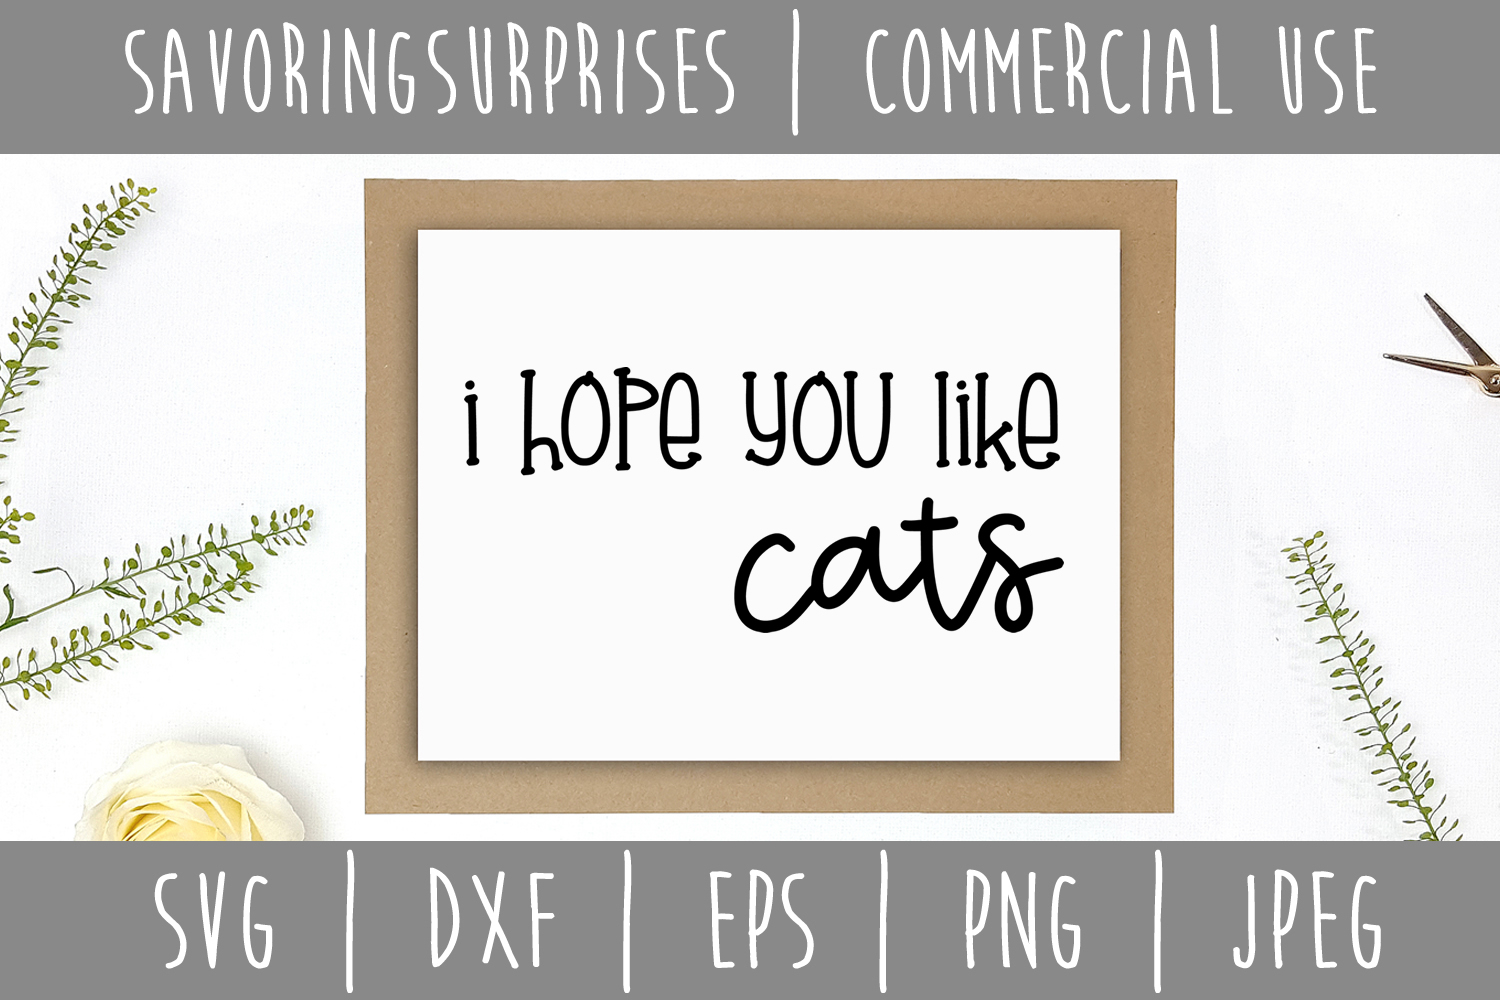 I Hope You Like Cats Doormat SVG, DXF, EPS, PNG JPEG example image 2